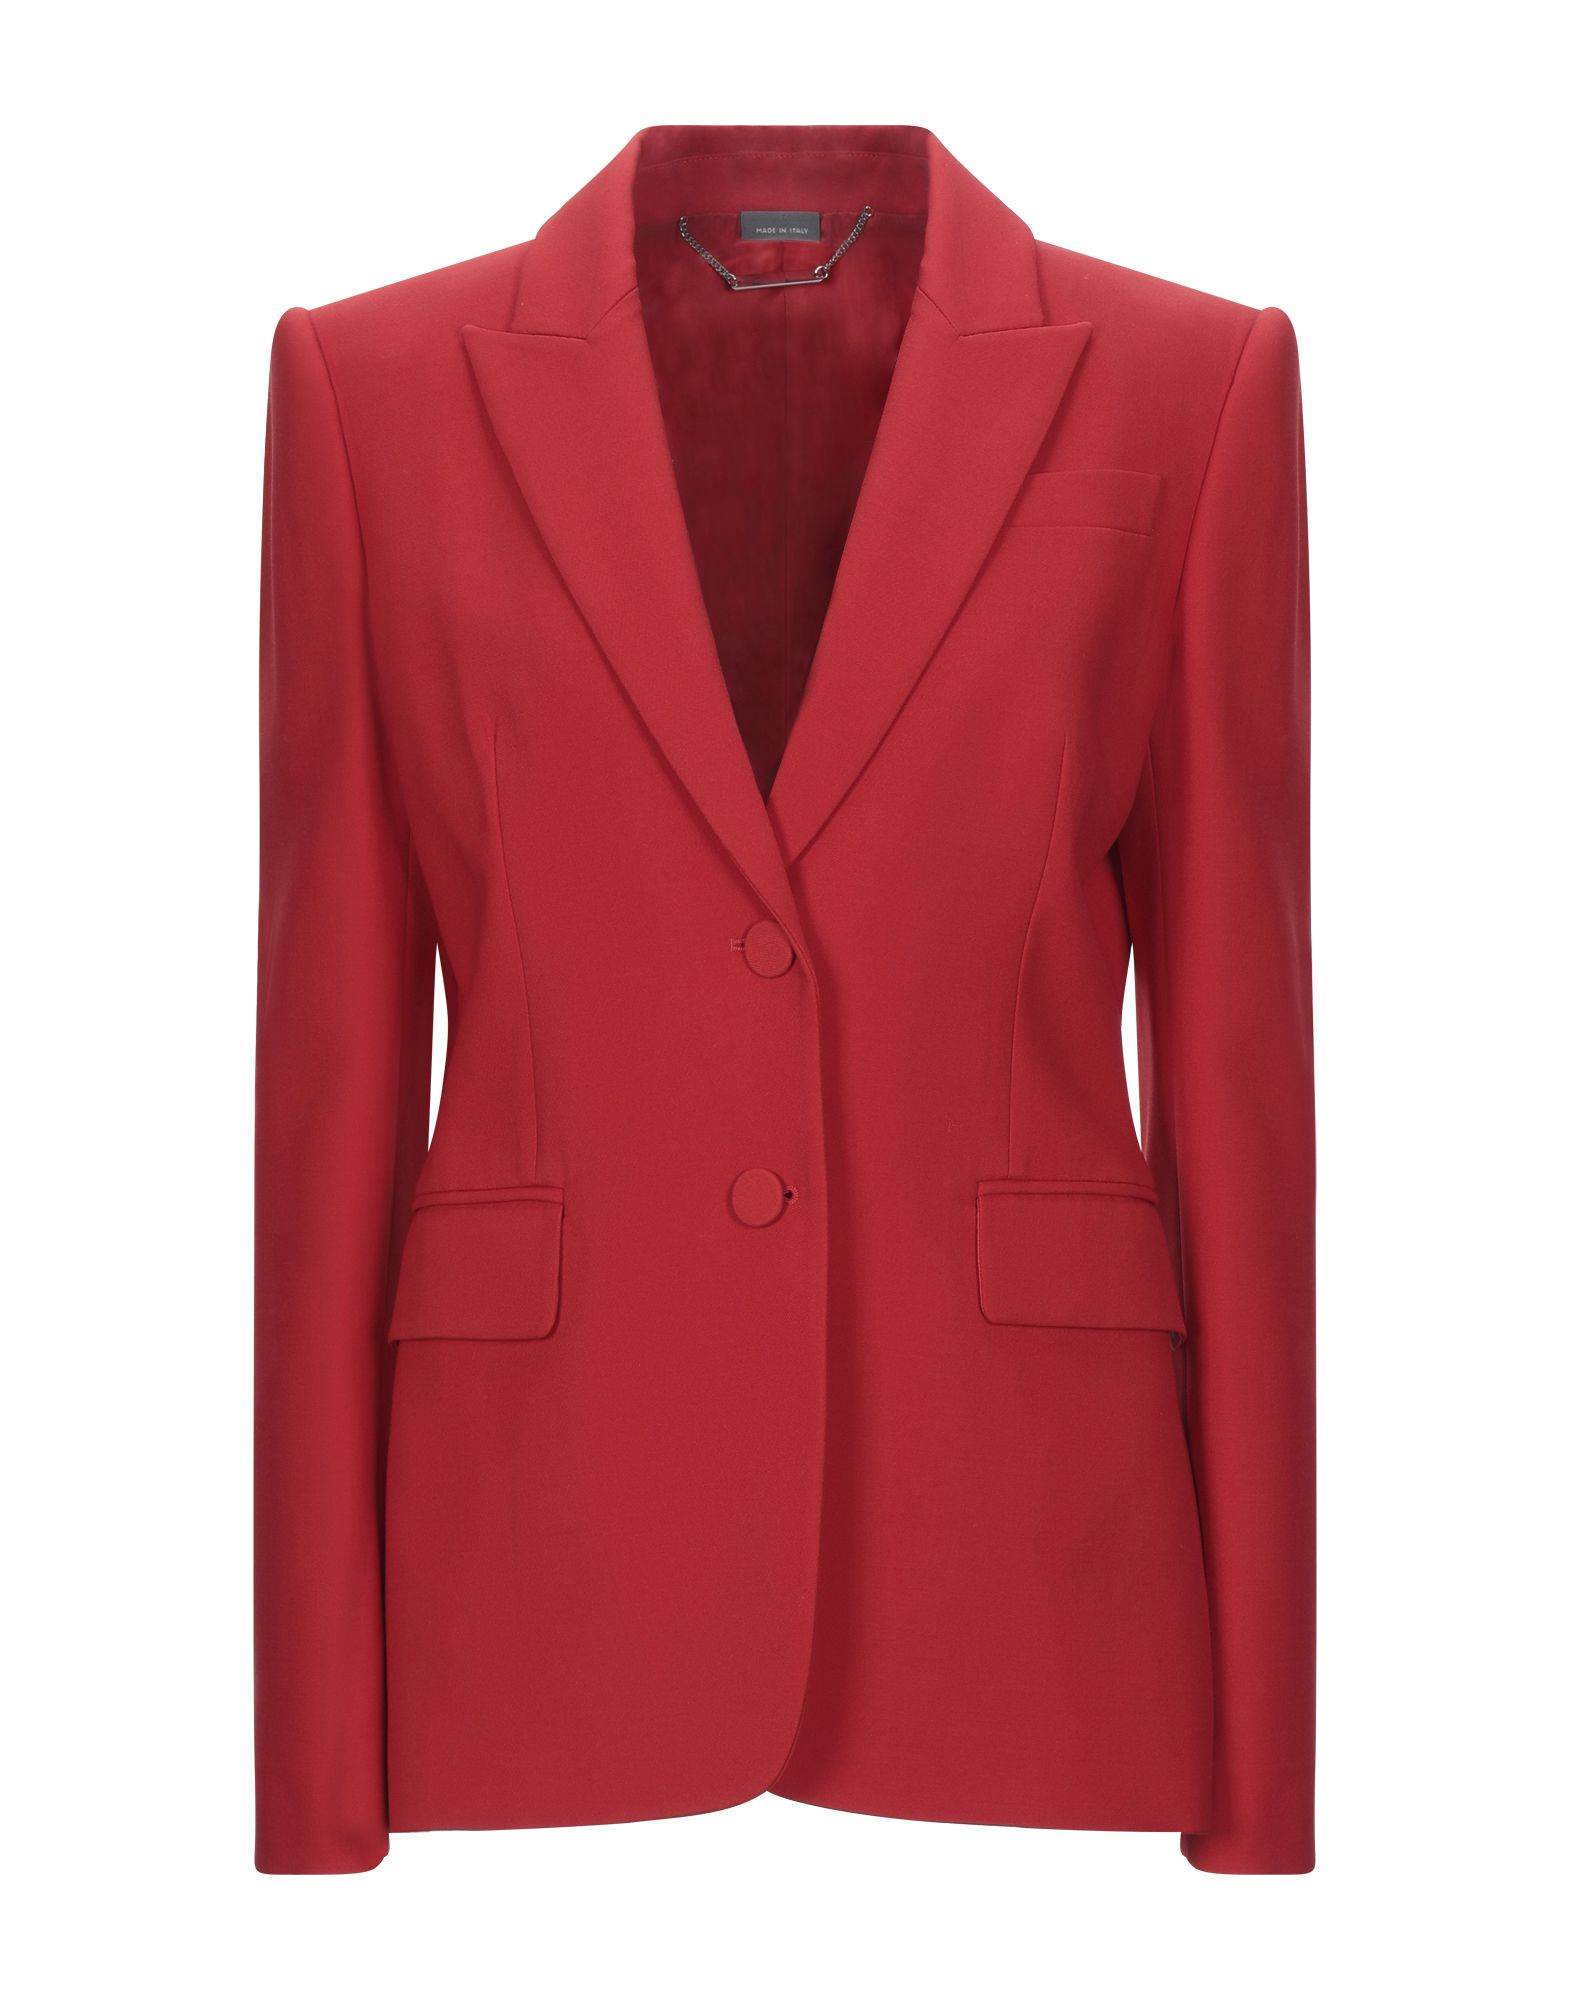 ALEXANDER MCQUEEN Suit jackets. baize, no appliqués, basic solid color, multipockets, single chest pocket, button closing, lapel collar, single-breasted, long sleeves, fully lined. 63% Wool, 25% Silk, 12% Polyamide